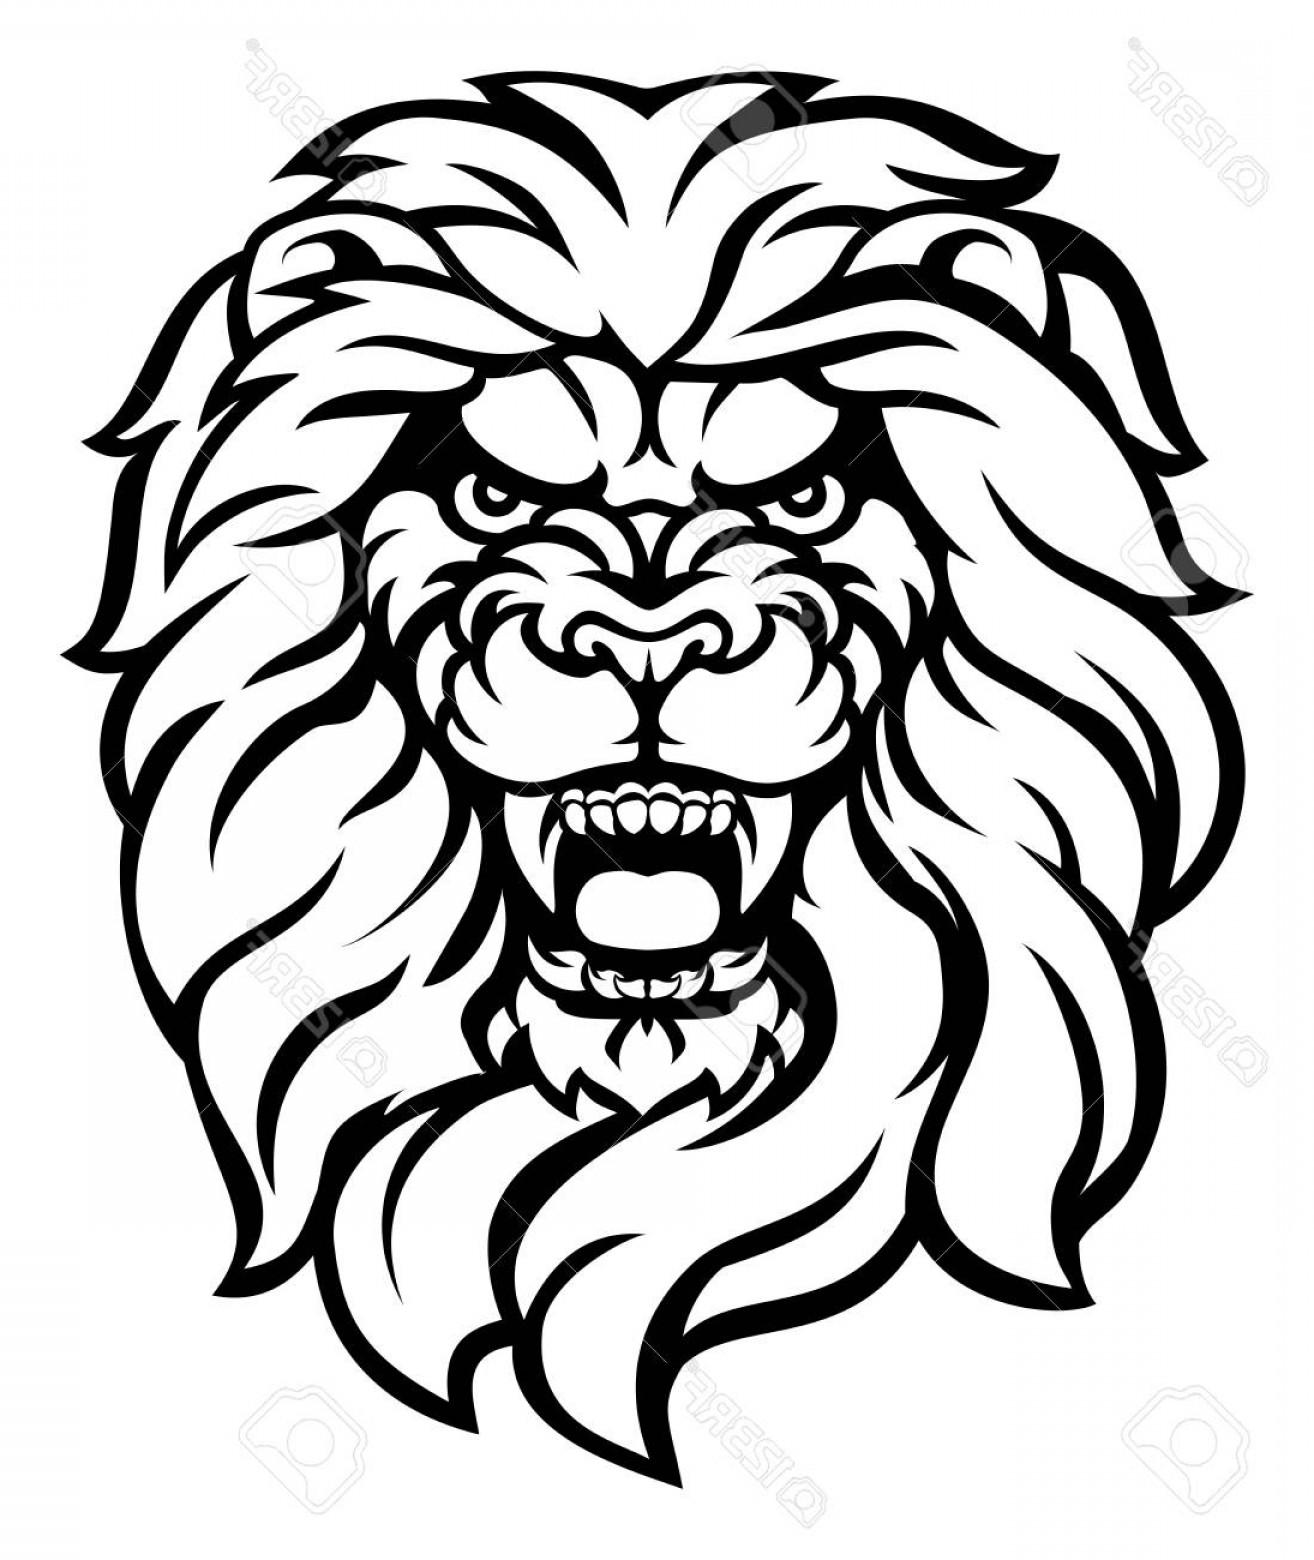 Lion Face Outline Drawing Free Download On Clipartmag Learn how to draw lion face outline pictures using these outlines or print just for coloring. clip art mag